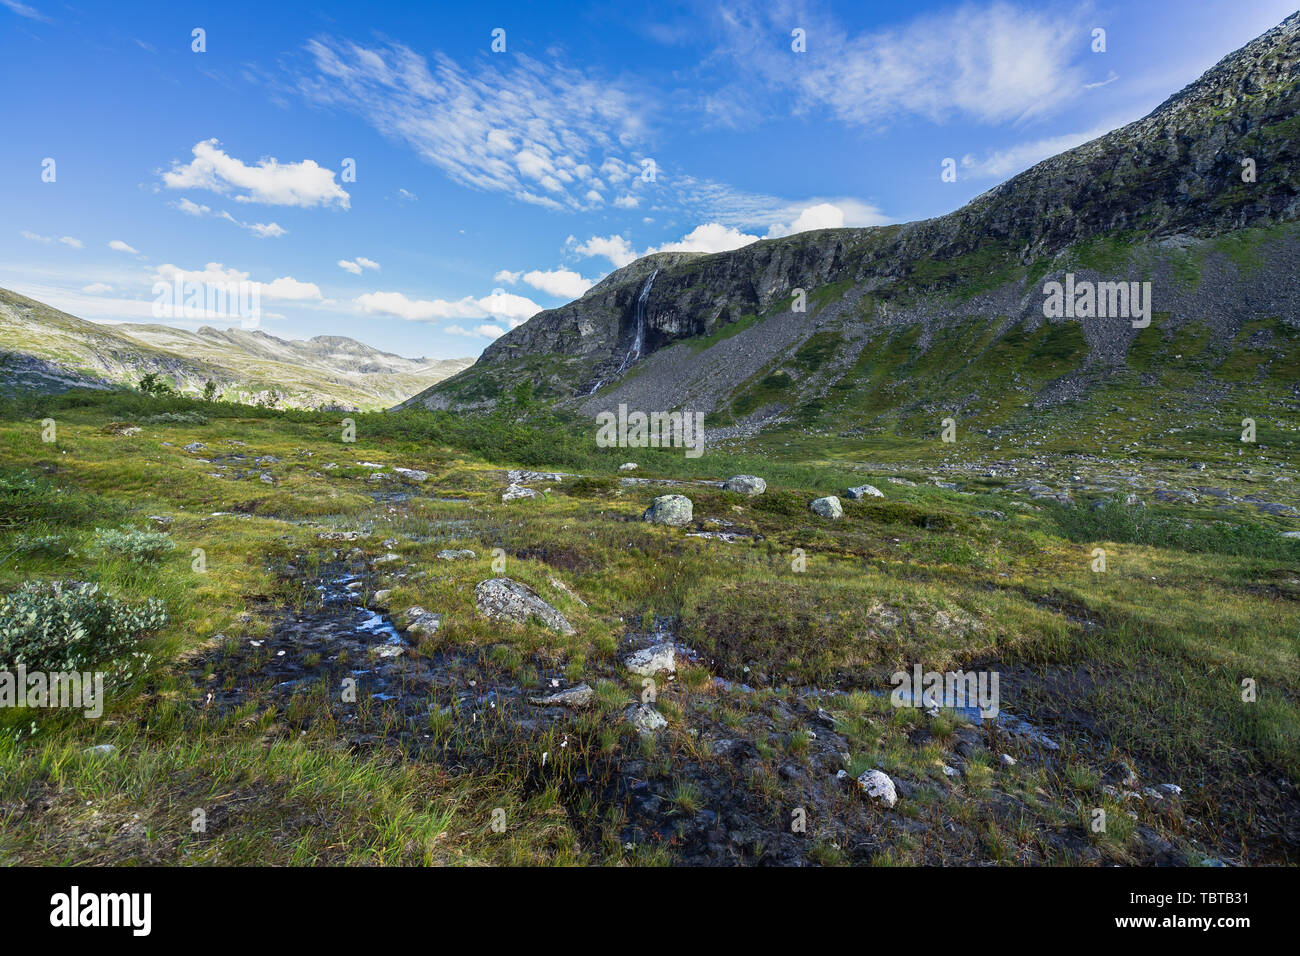 Landscape and nature at the upper part of the Valldalen Valley towards Trollstigen, Sunnmore, More og Romsdal, Norway - Stock Image